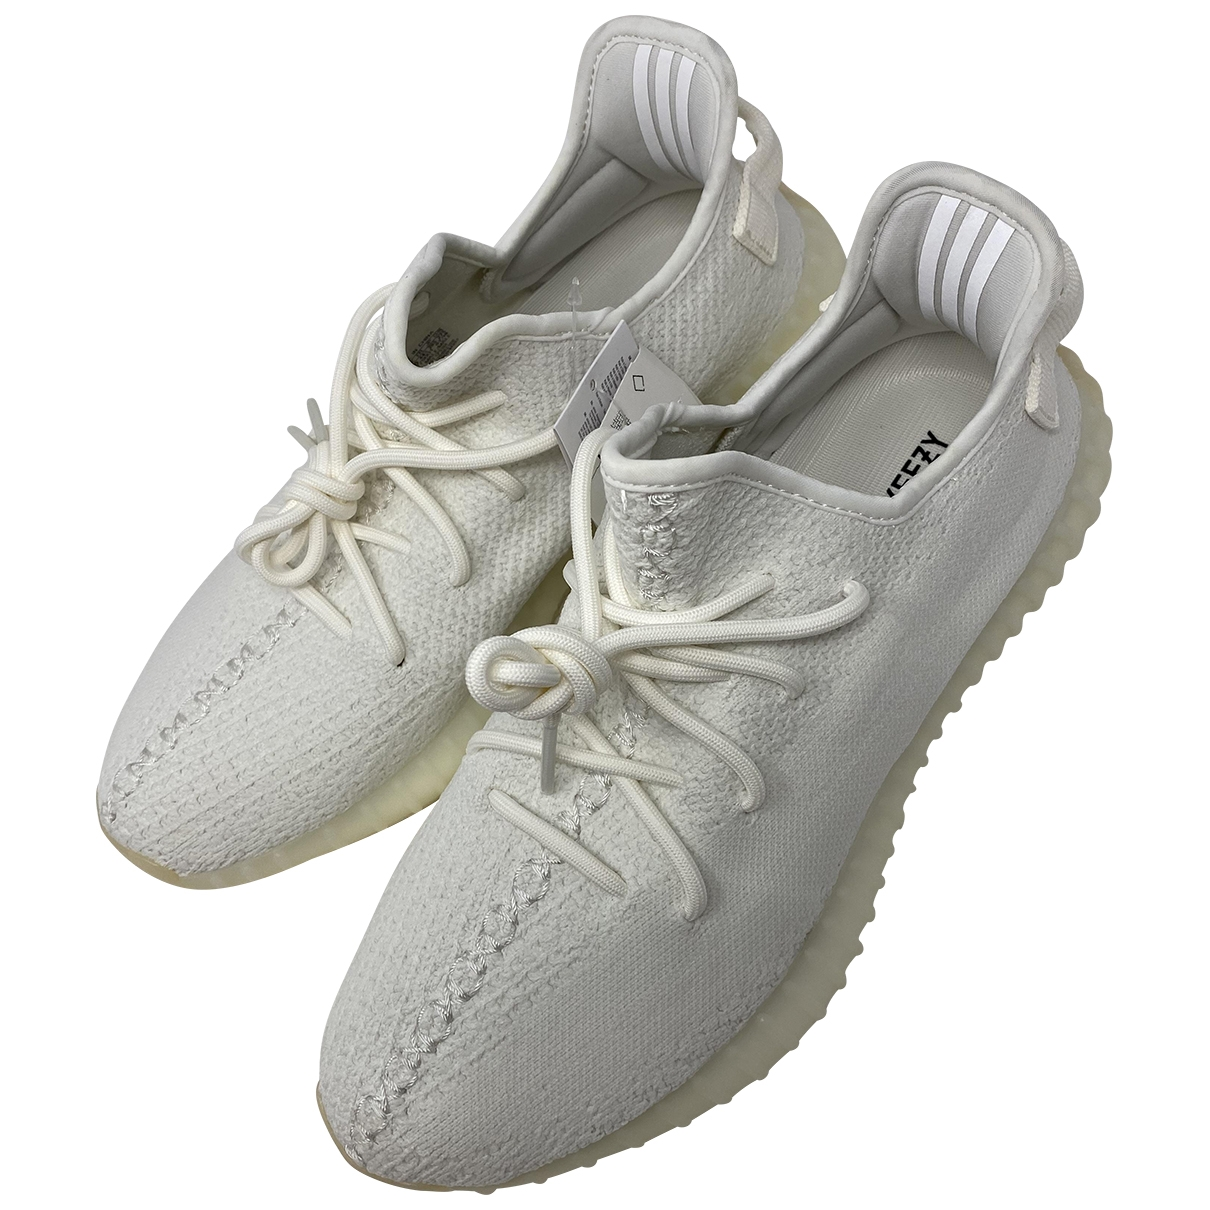 Yeezy X Adidas Boost 350 V2 Sneakers in  Weiss Leinen